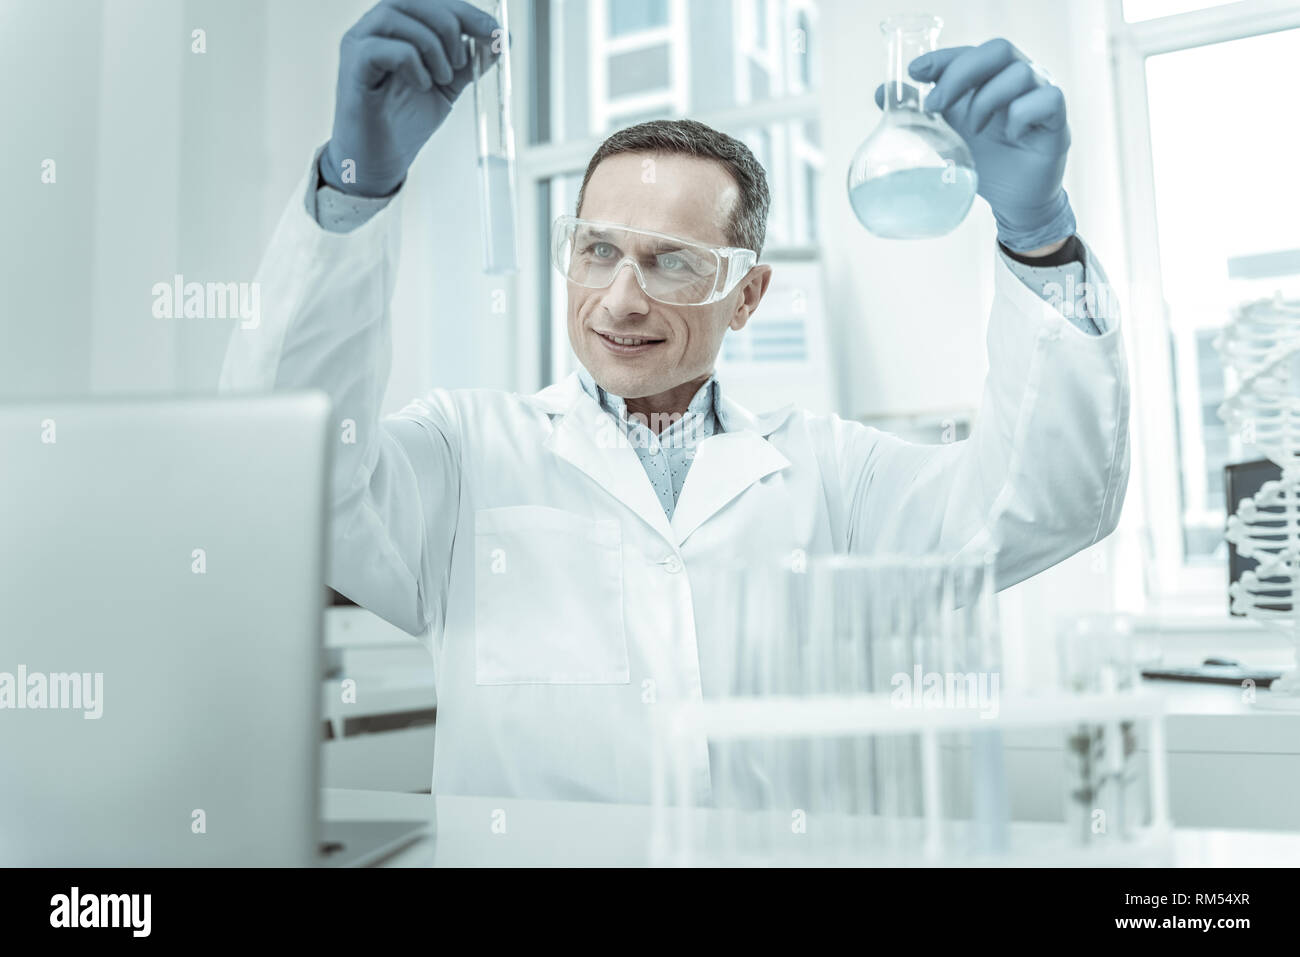 Contented scientist carrying tubes in both hands - Stock Image